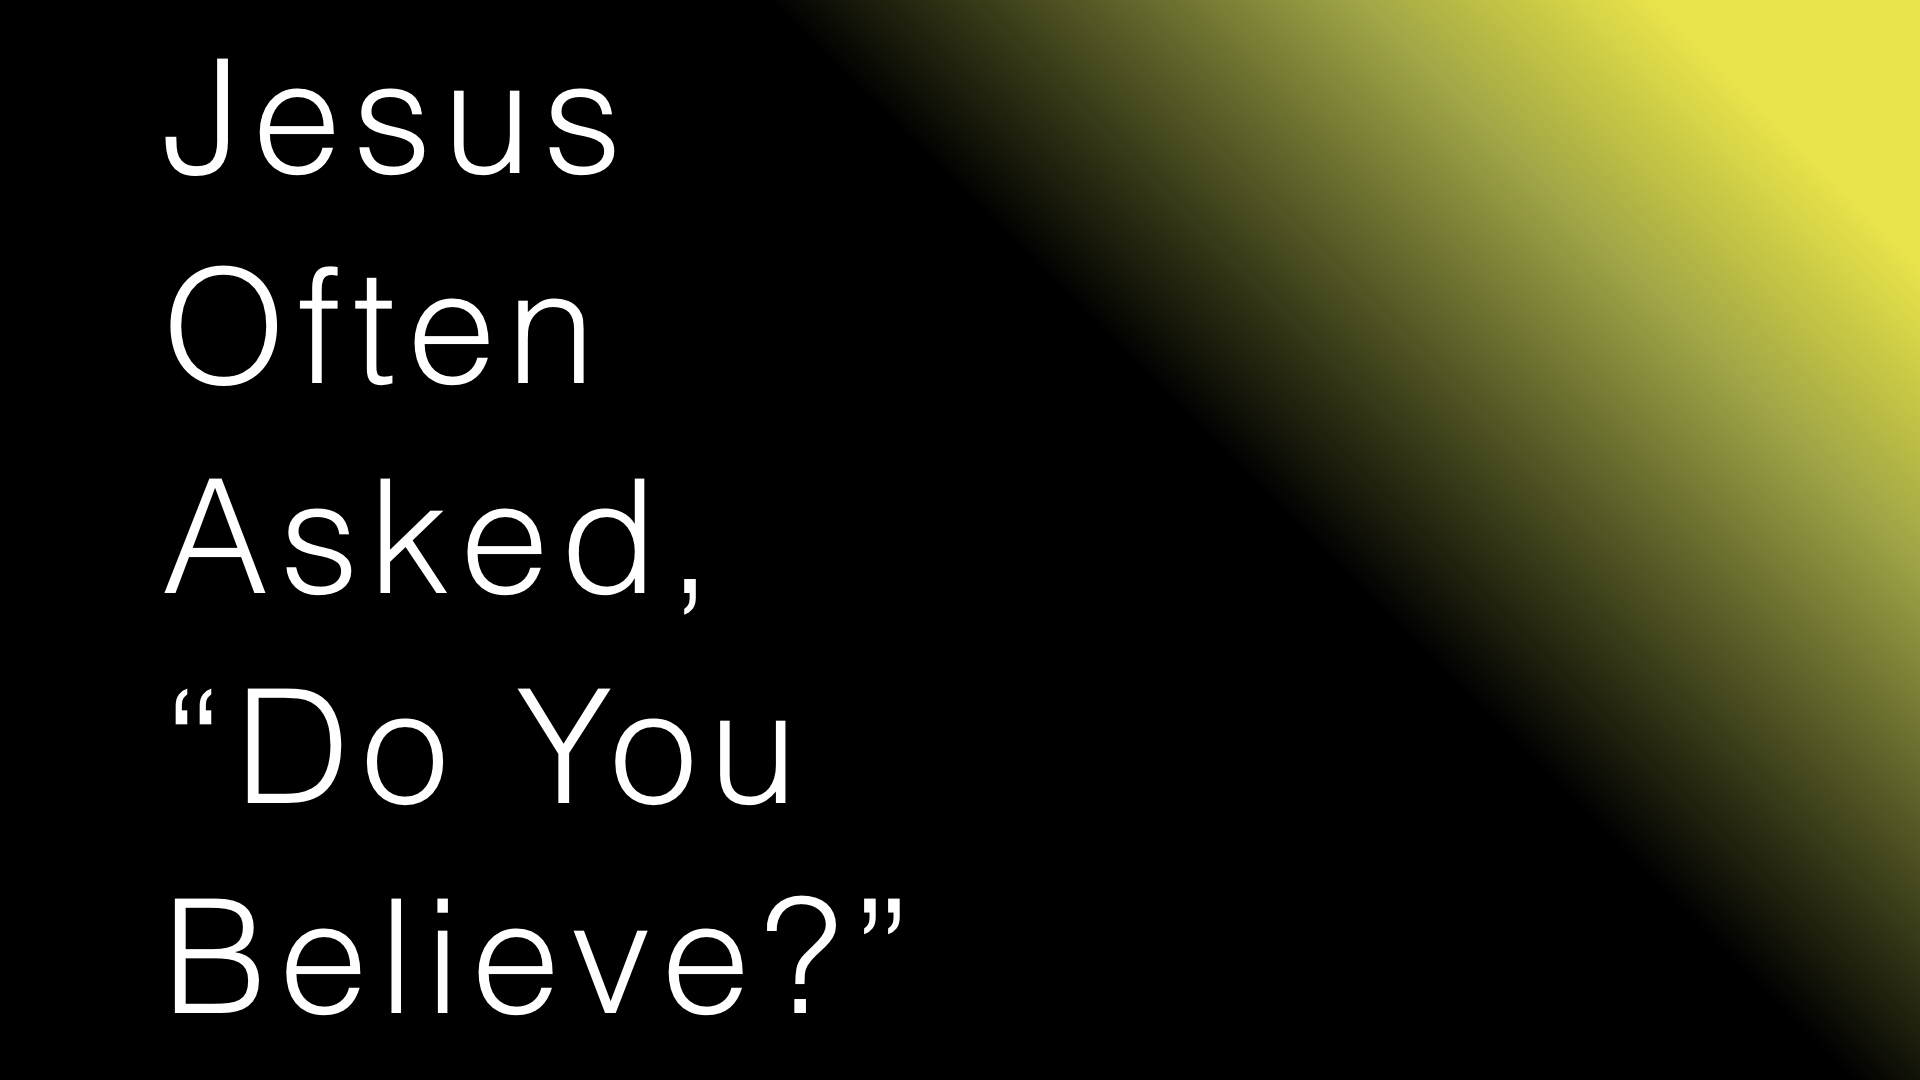 Jesus Often Asked, Do You Believe? WIDE.001.jpeg